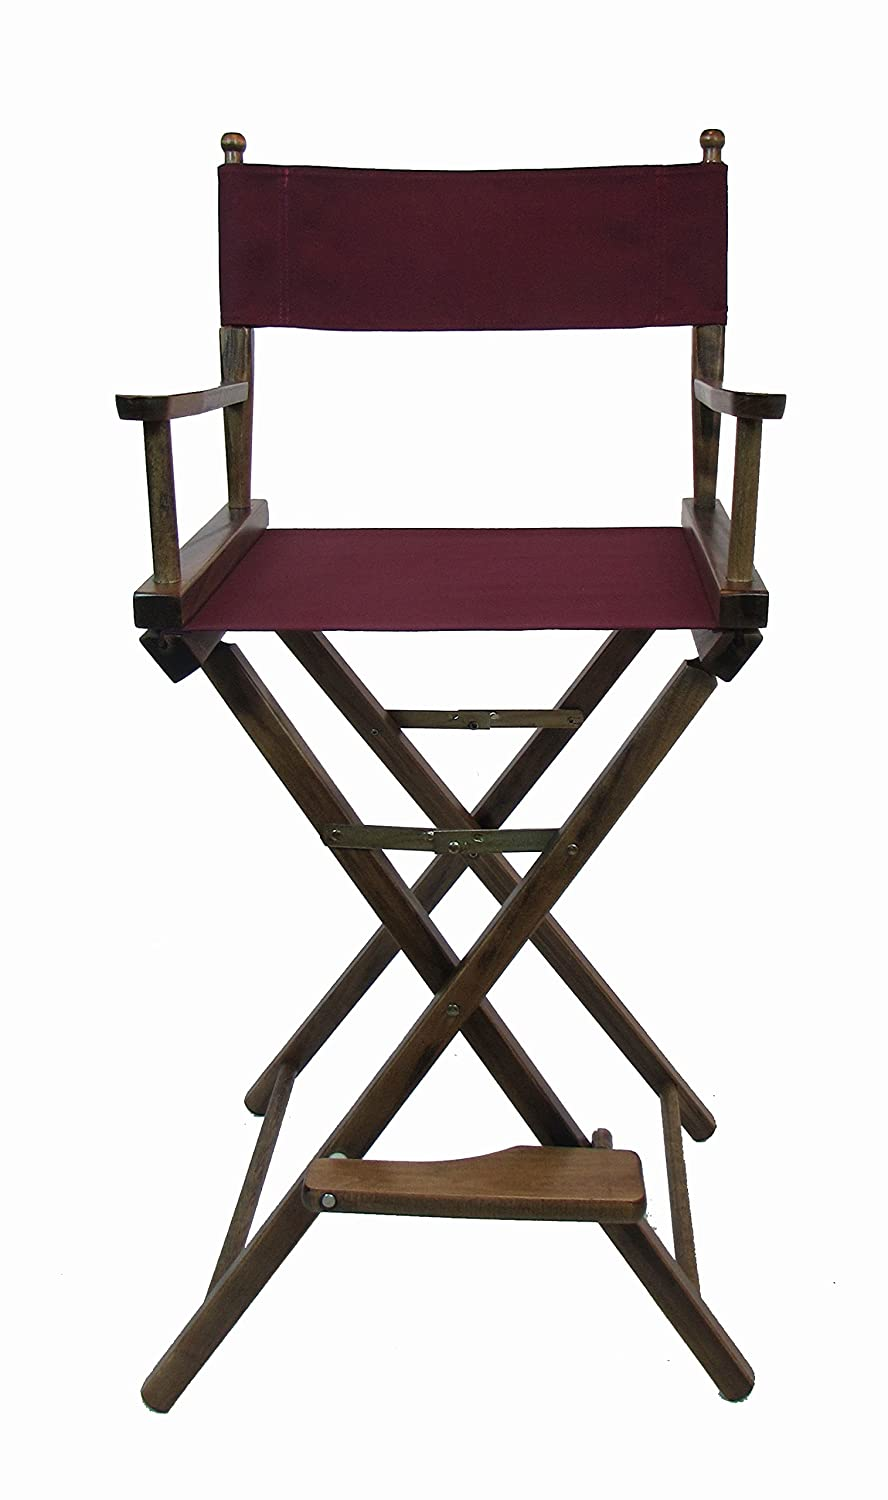 Personalized Imprinted Gold Medal Contemporary 30 Bar Height Walnut Frame Directors Chair – Black